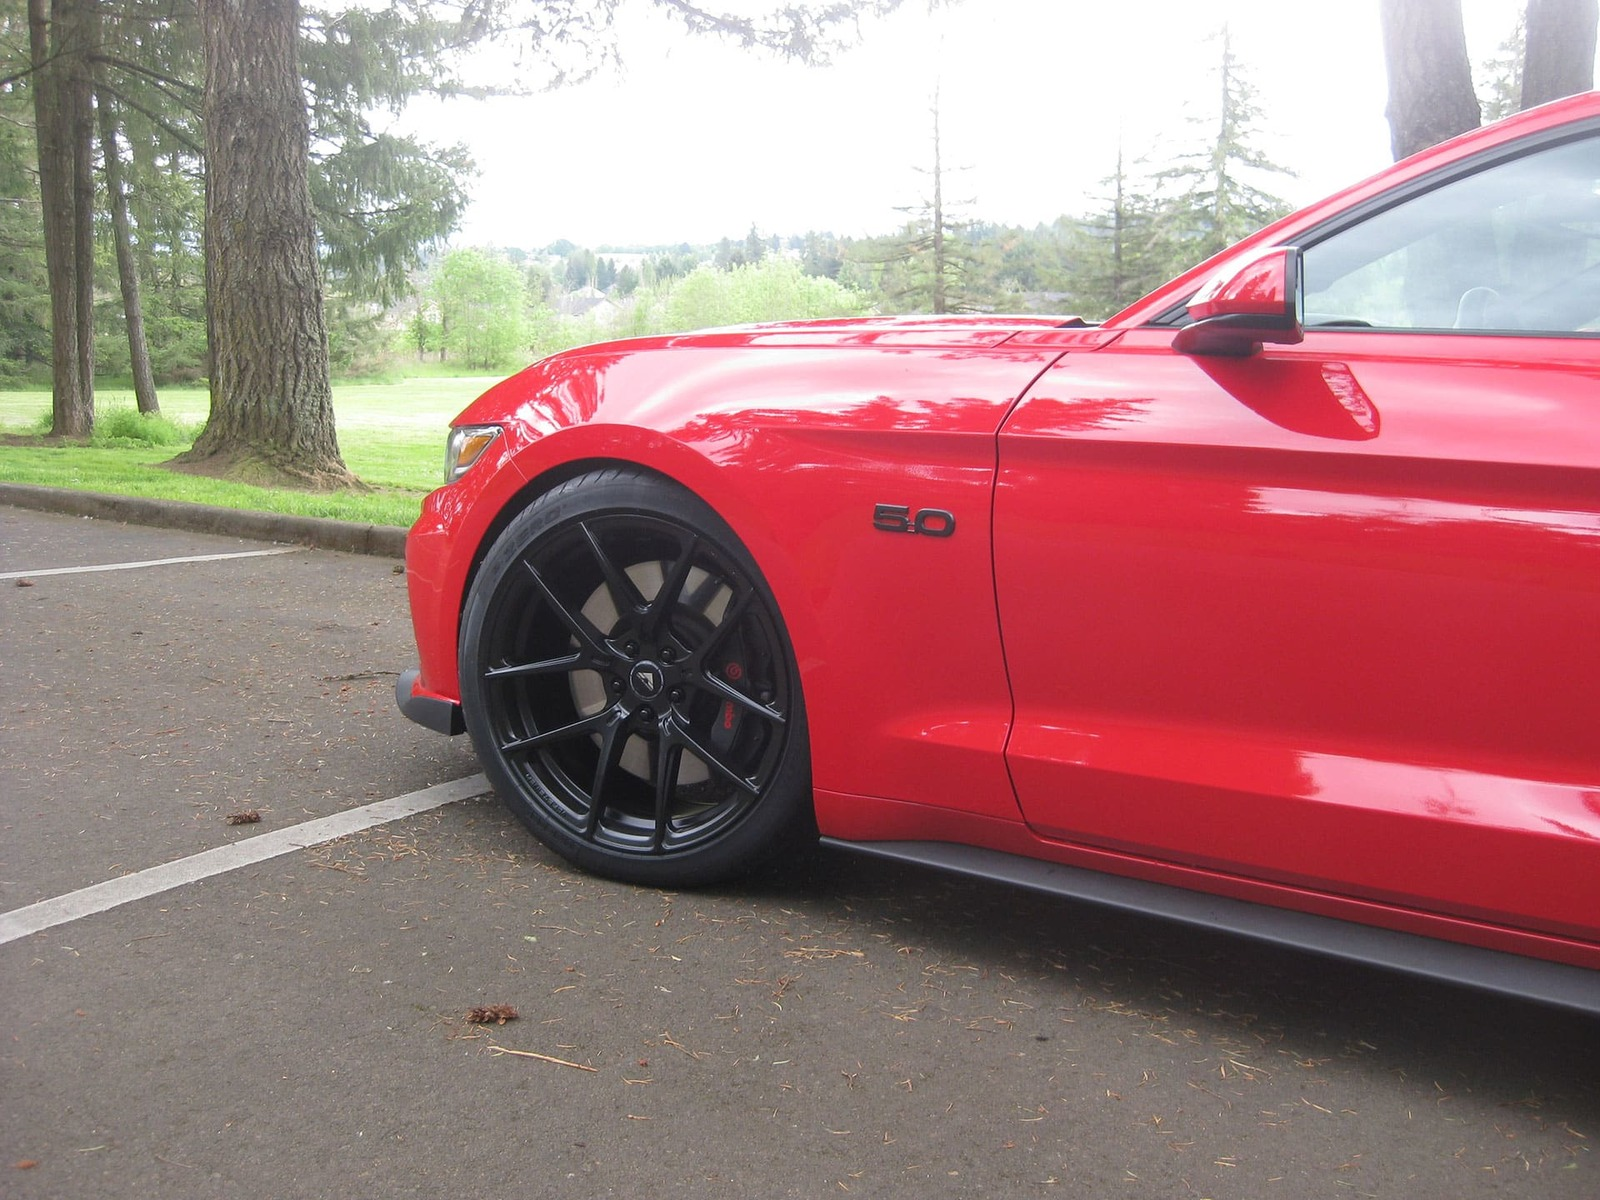 RACE-RED-FORD-MUSTANG-GTPP-S550-VORSTEINER-VFF101-GLOSS-BLACK-CONCAVE-WHEELS.jpg